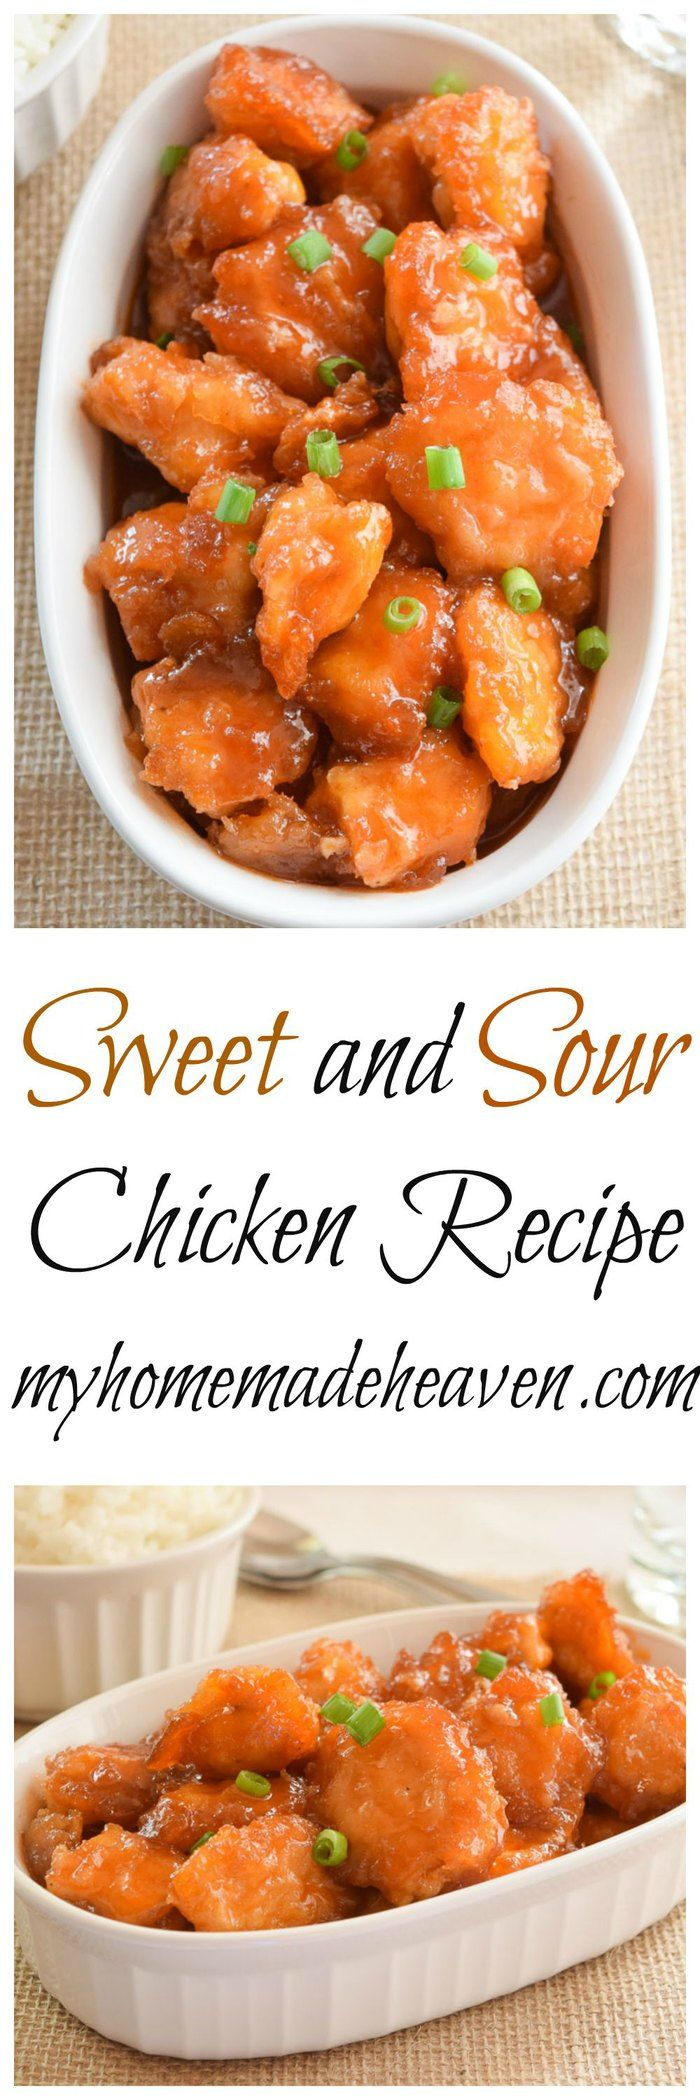 I made this today! Wow! It was delicious! My husband said it was better than take-out! Definitely a keeper!! She also shows you how you can make it gluten-free and refined sugar-free!